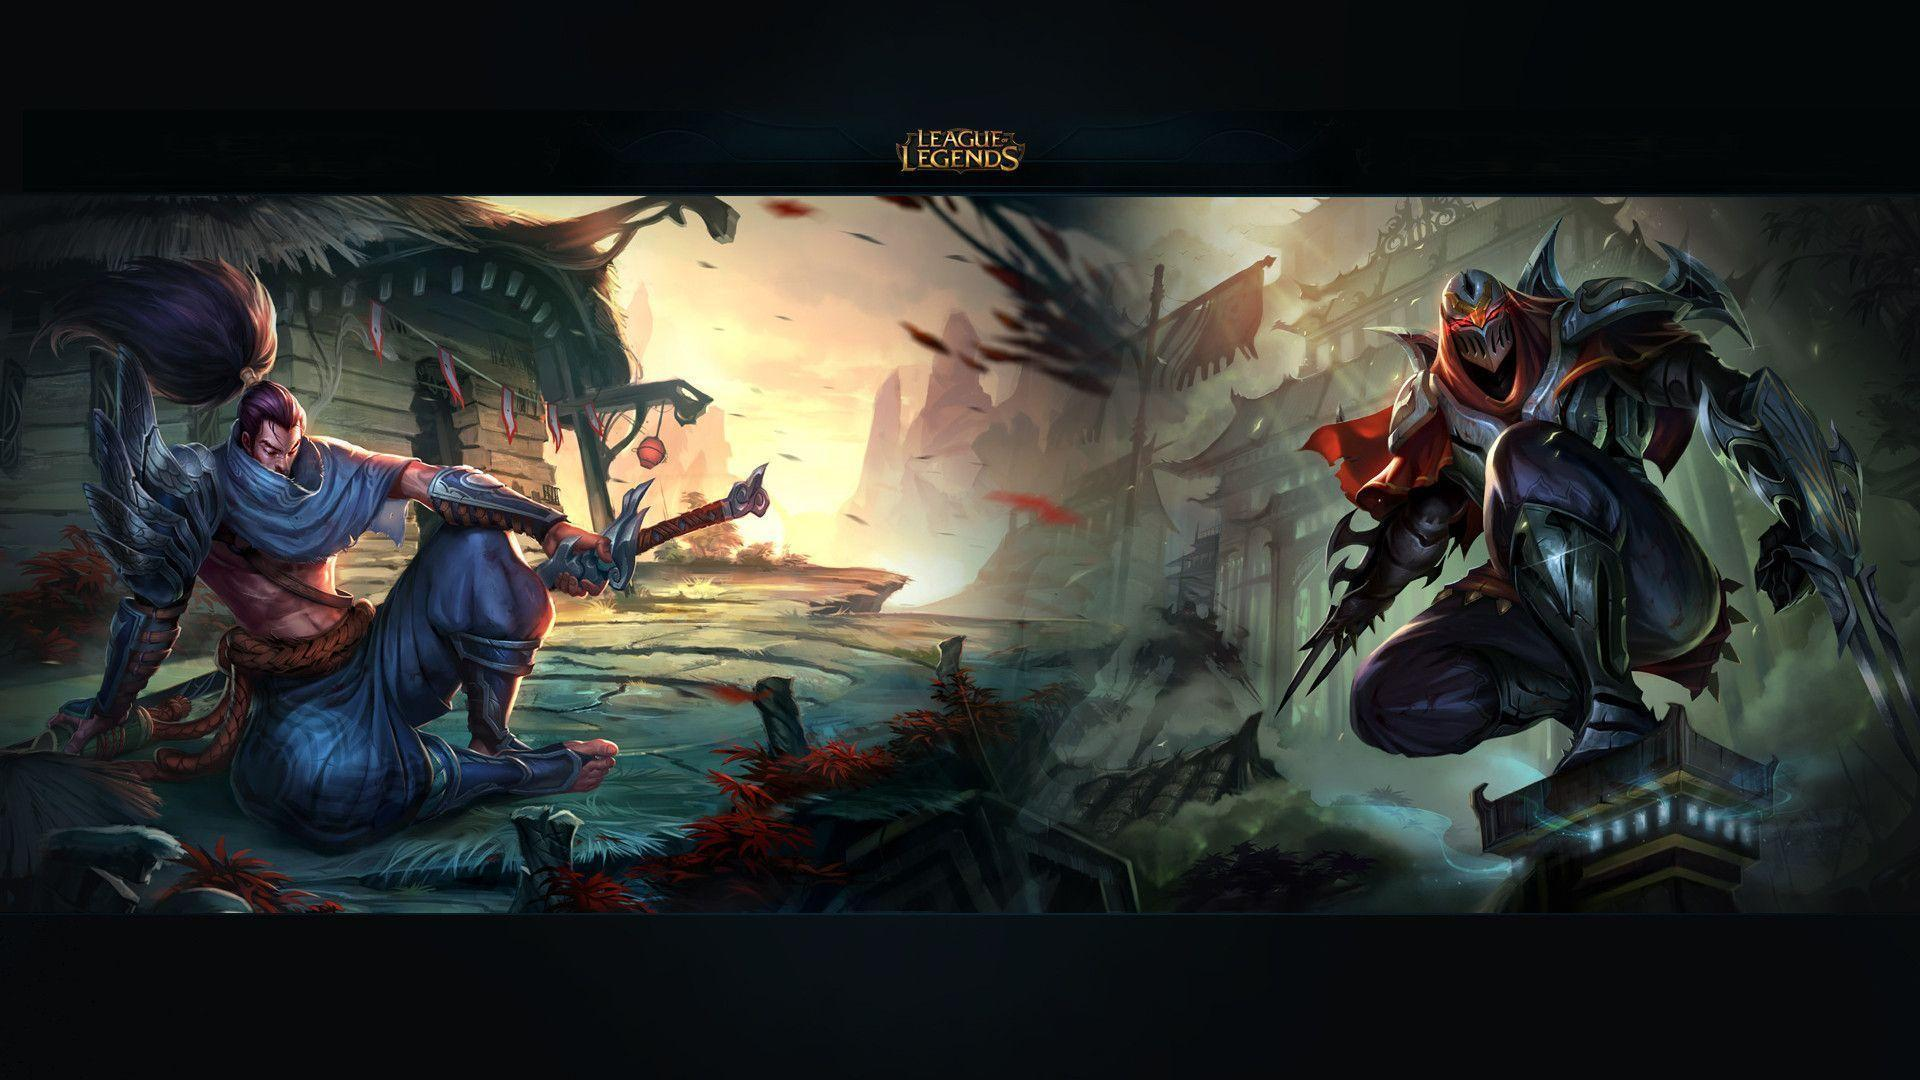 yasuo vs zed hd wallpaper 1920x1080